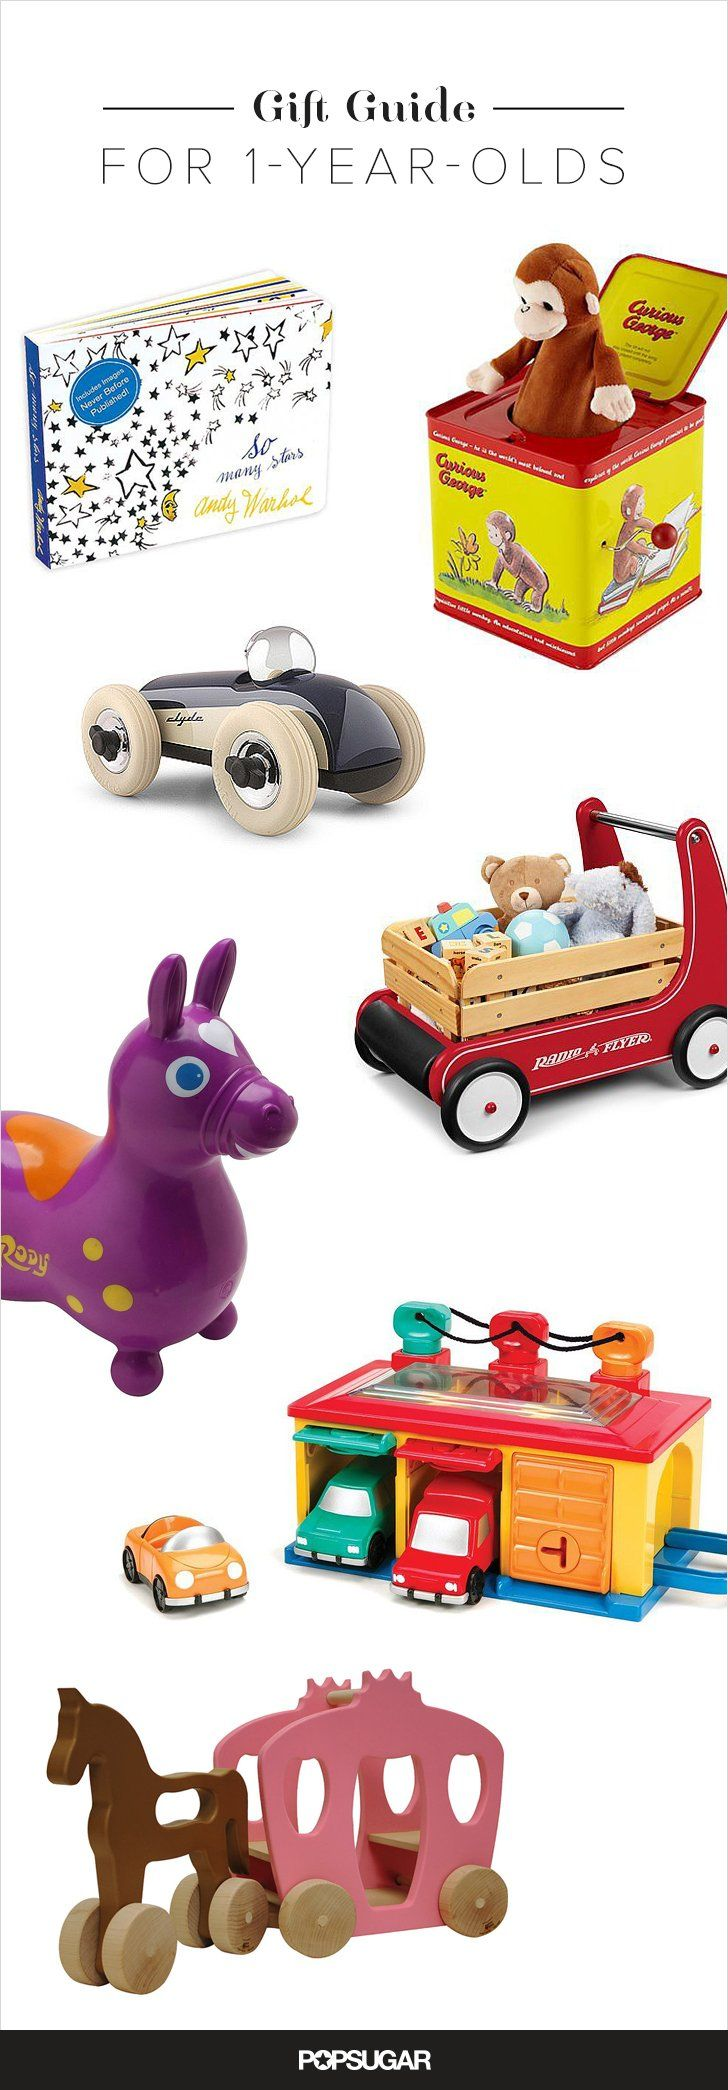 22 Great Gift Ideas For 1-Year-Olds